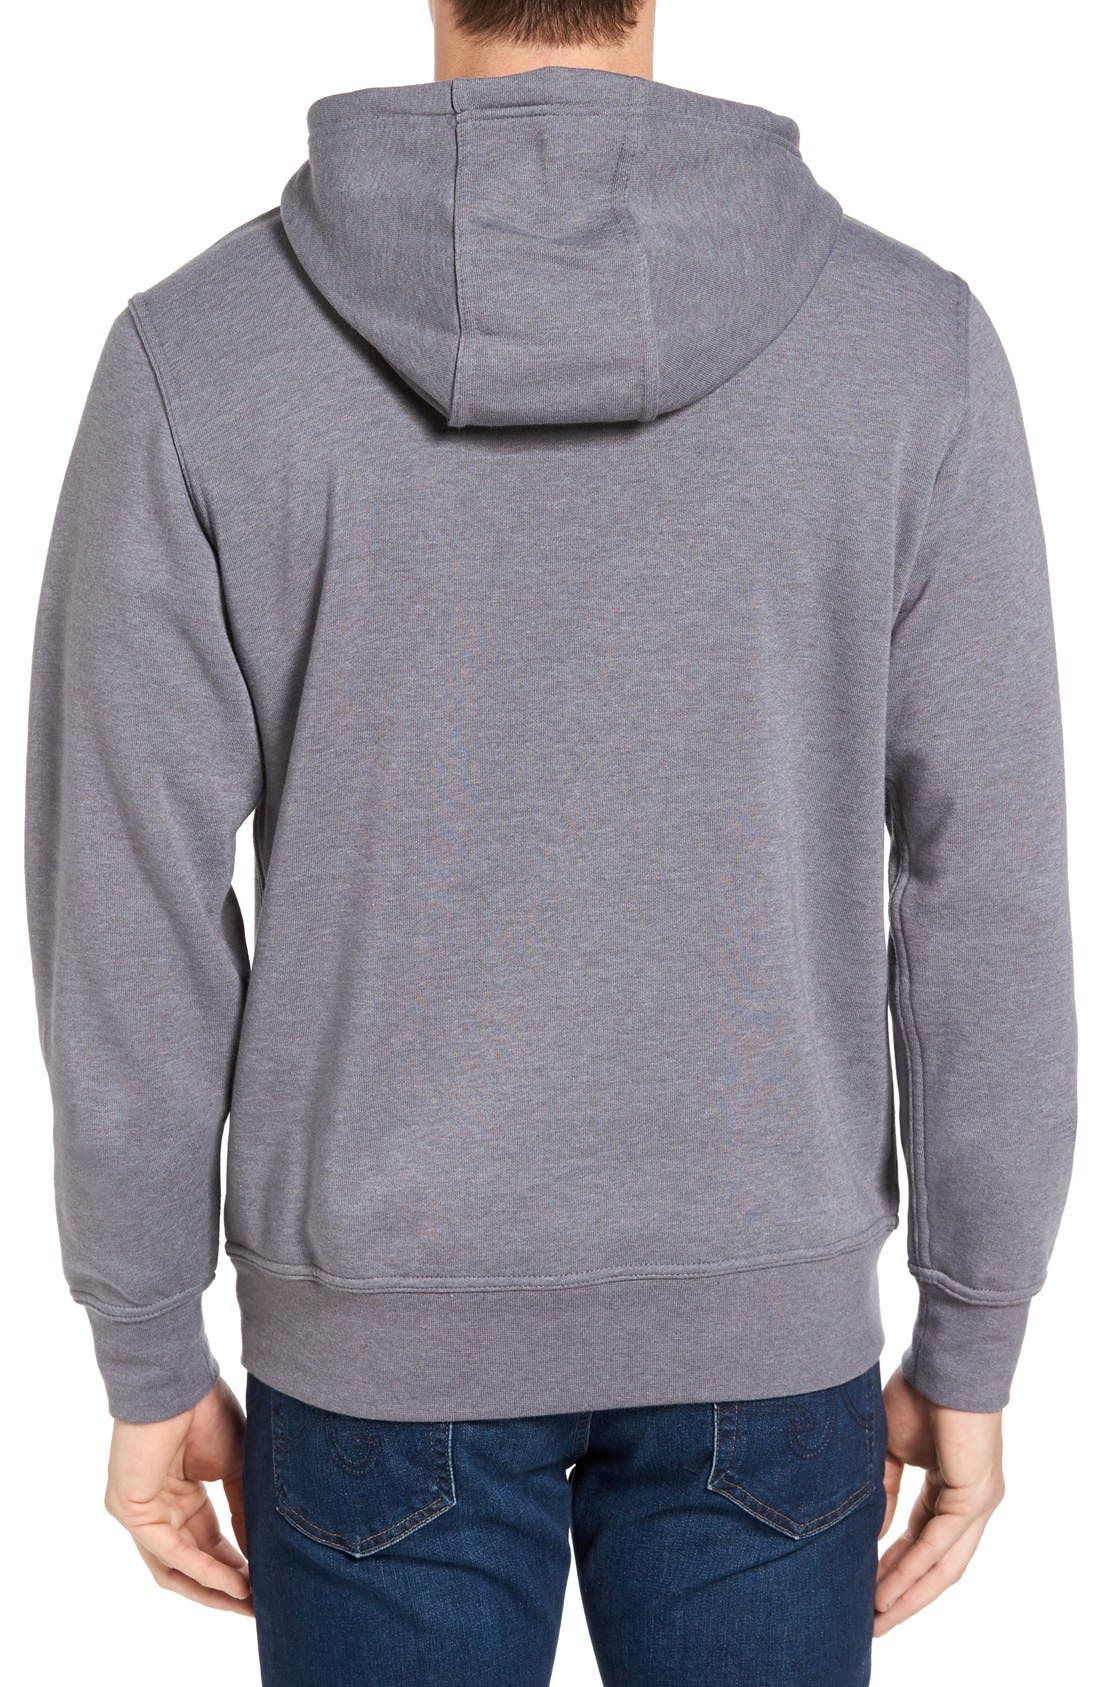 Alternate Image 2  - The North Face Drawstring Hoodie